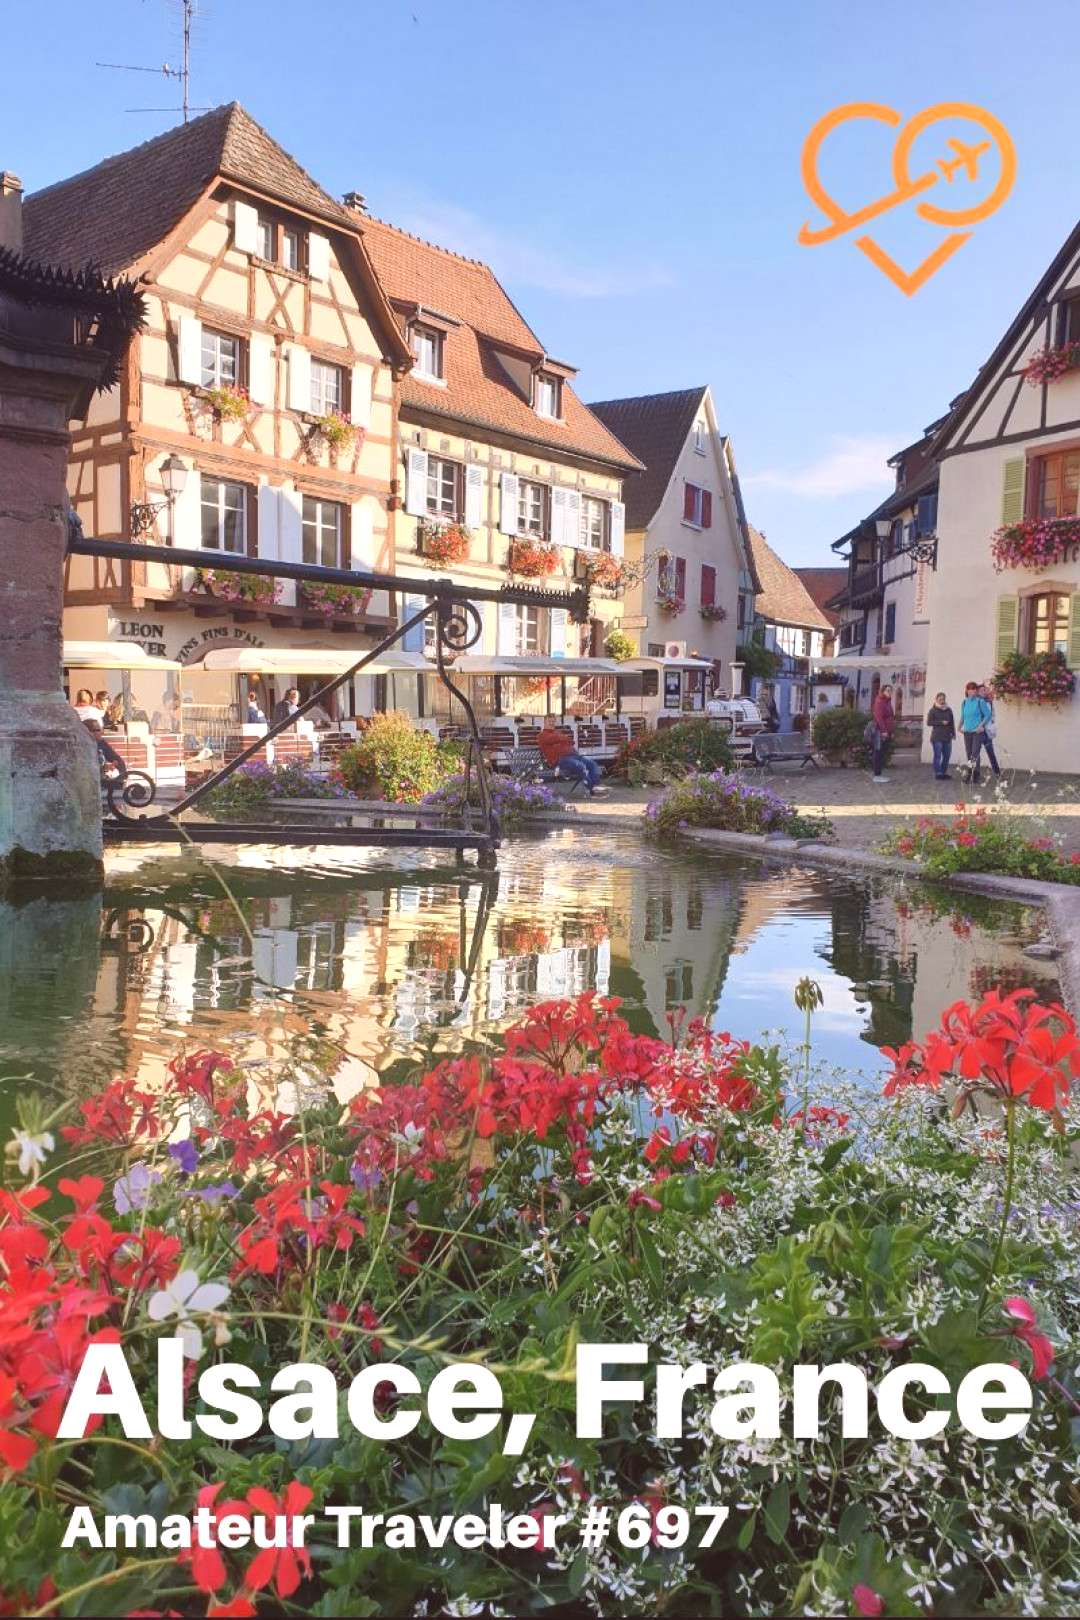 Travel to the Alsace Region of France - Episode 697 - Amateur Traveler Travel to the Alsace Region